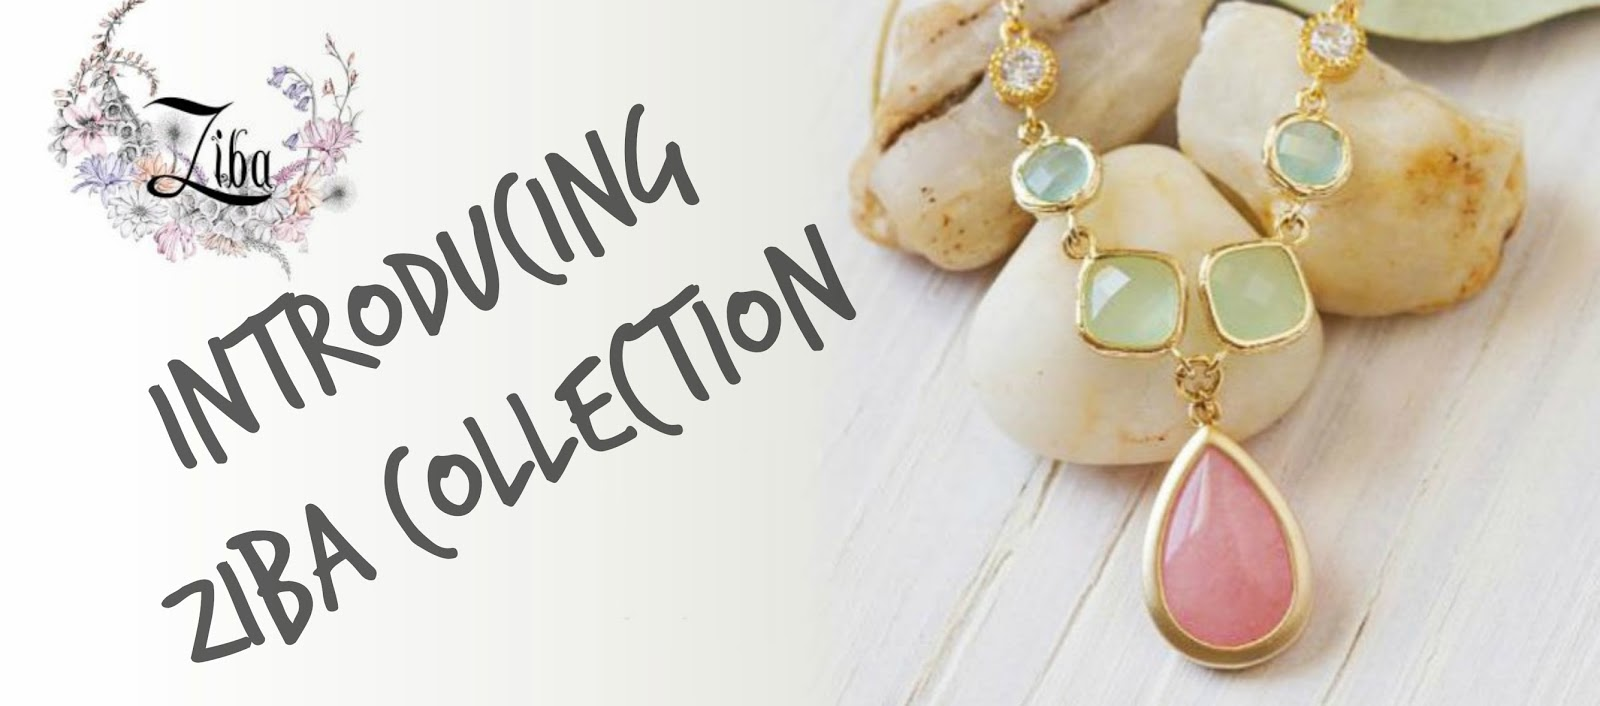 ZIBA collection jewellery blog